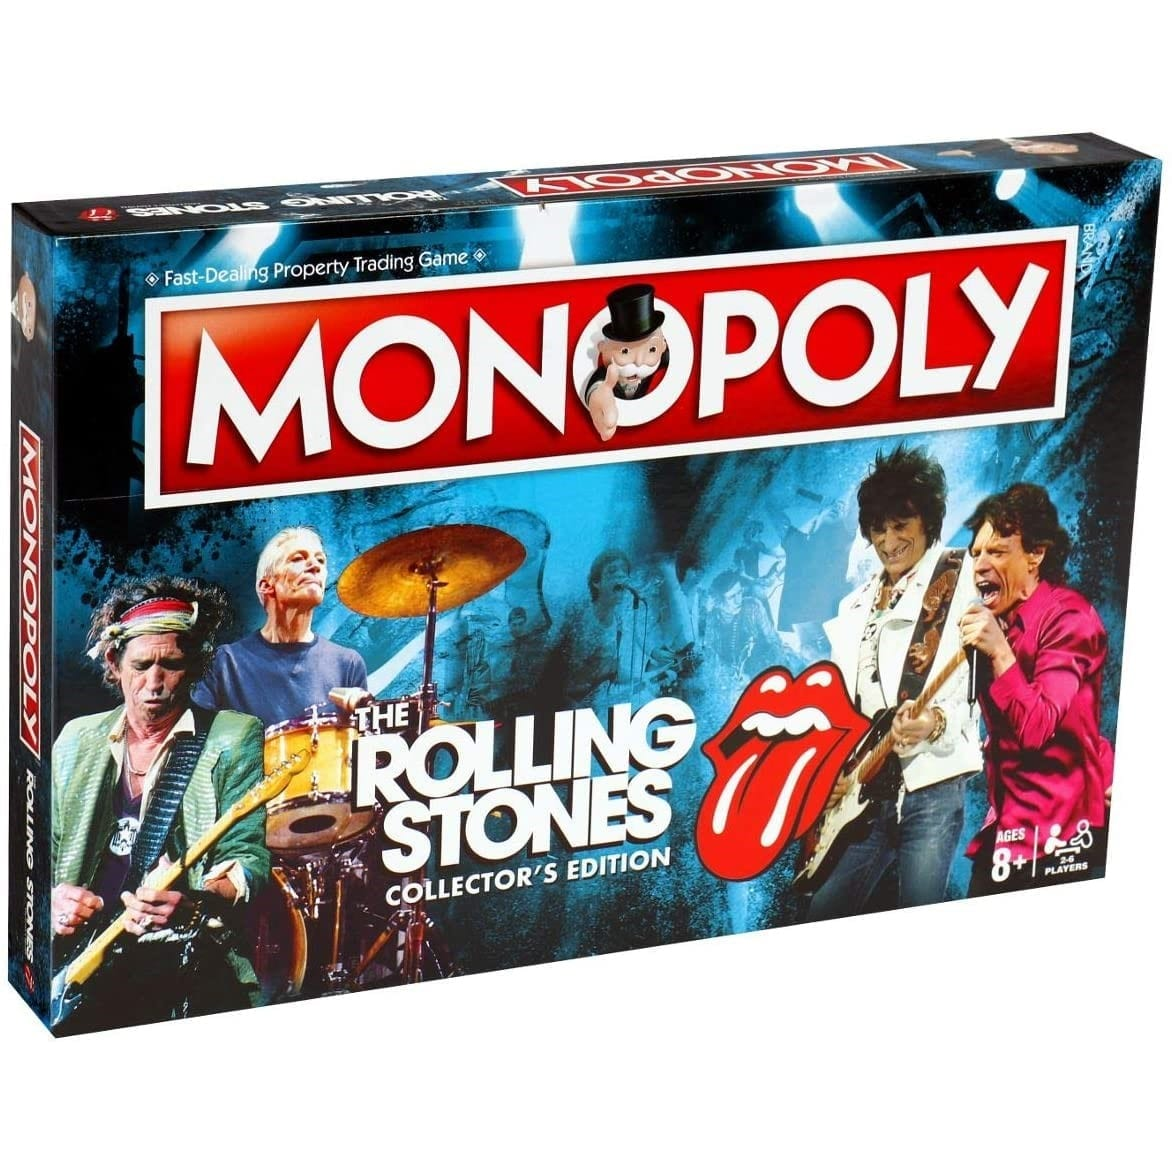 Monopoly Collectors Edition - The Rolling Stones - Brætspil - HASBRO GAMING - 5036905032827 - July 4, 2018